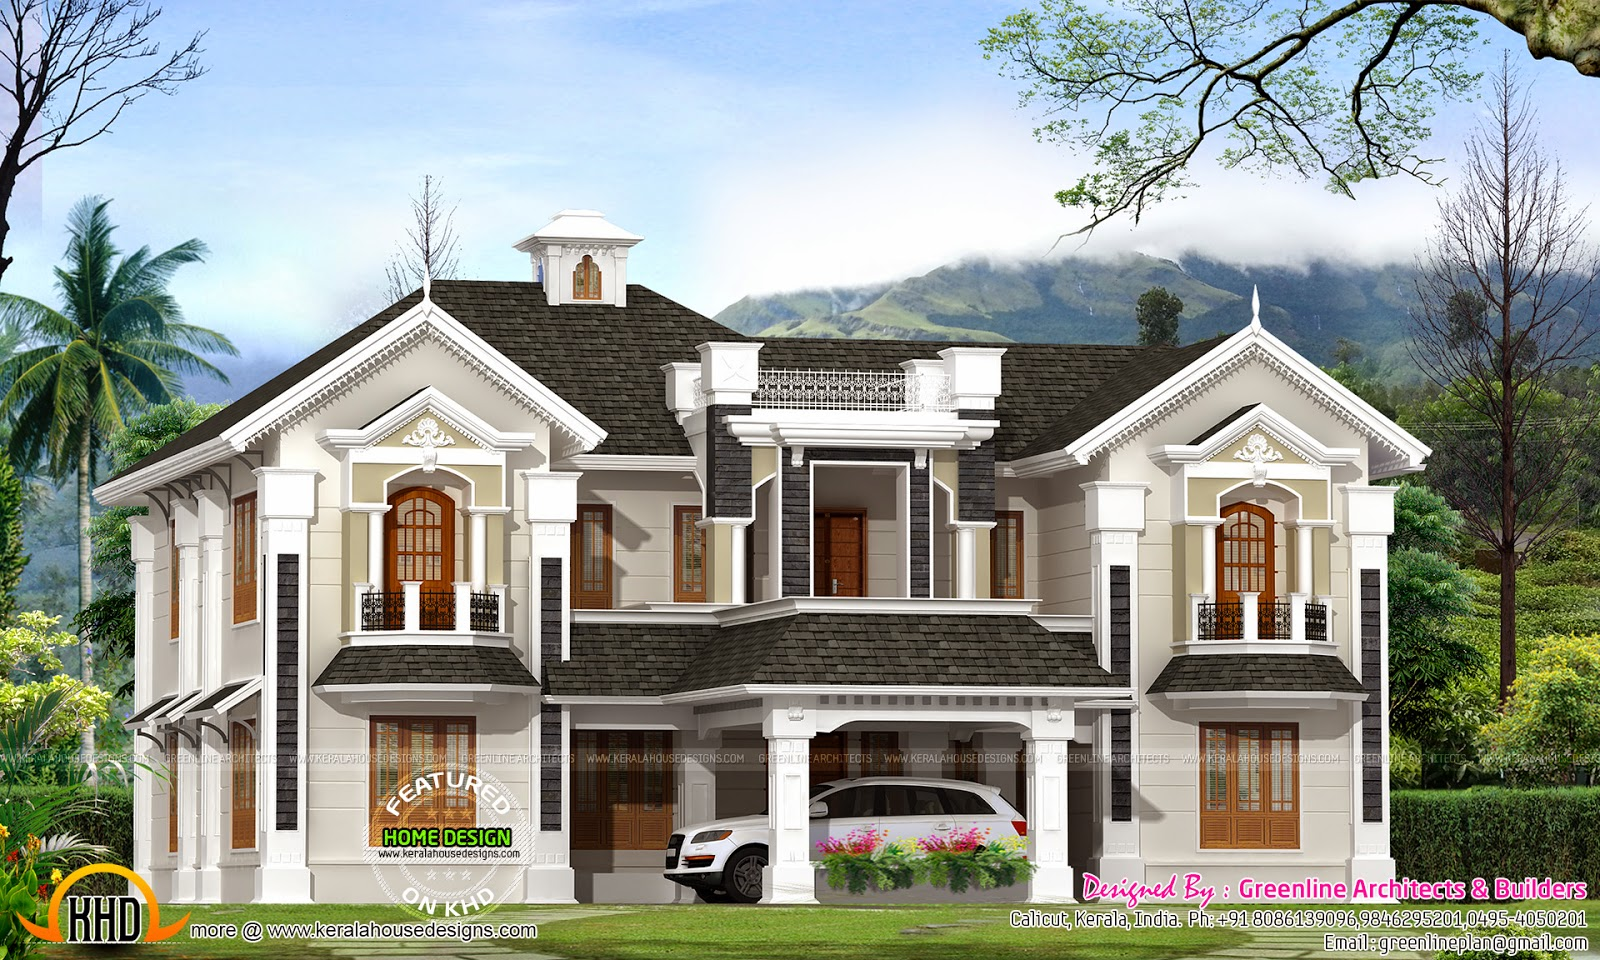 Colonial style house in kerala kerala home design and Colonial home builders